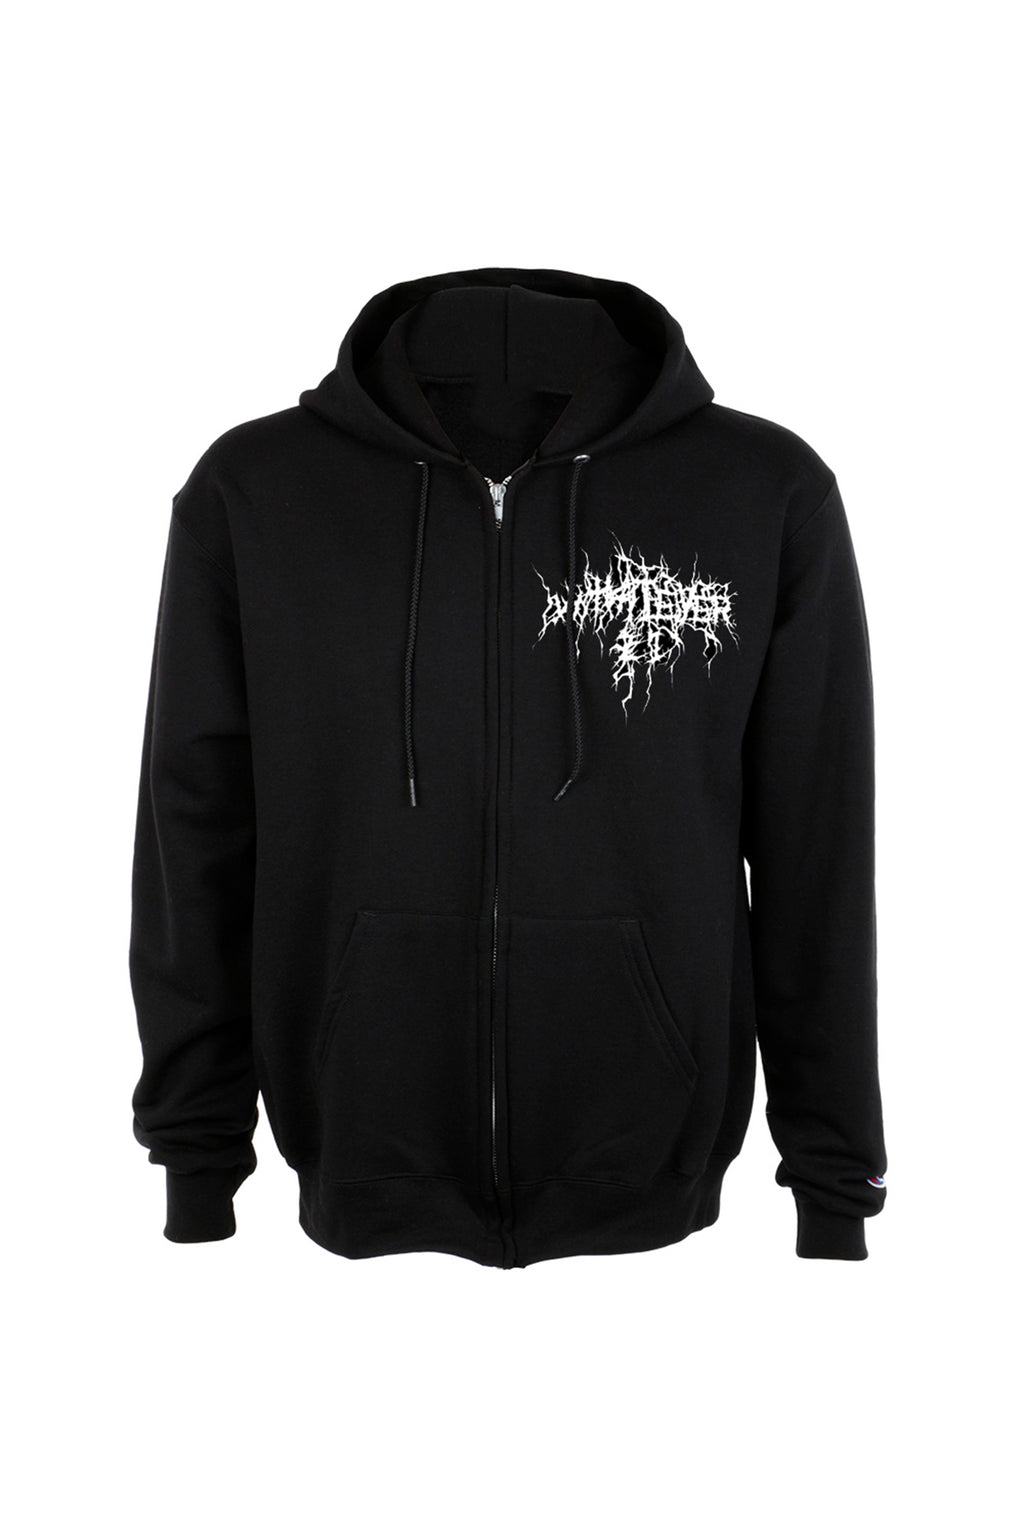 DARK LORD ZIP-UP TOUR HOODIE